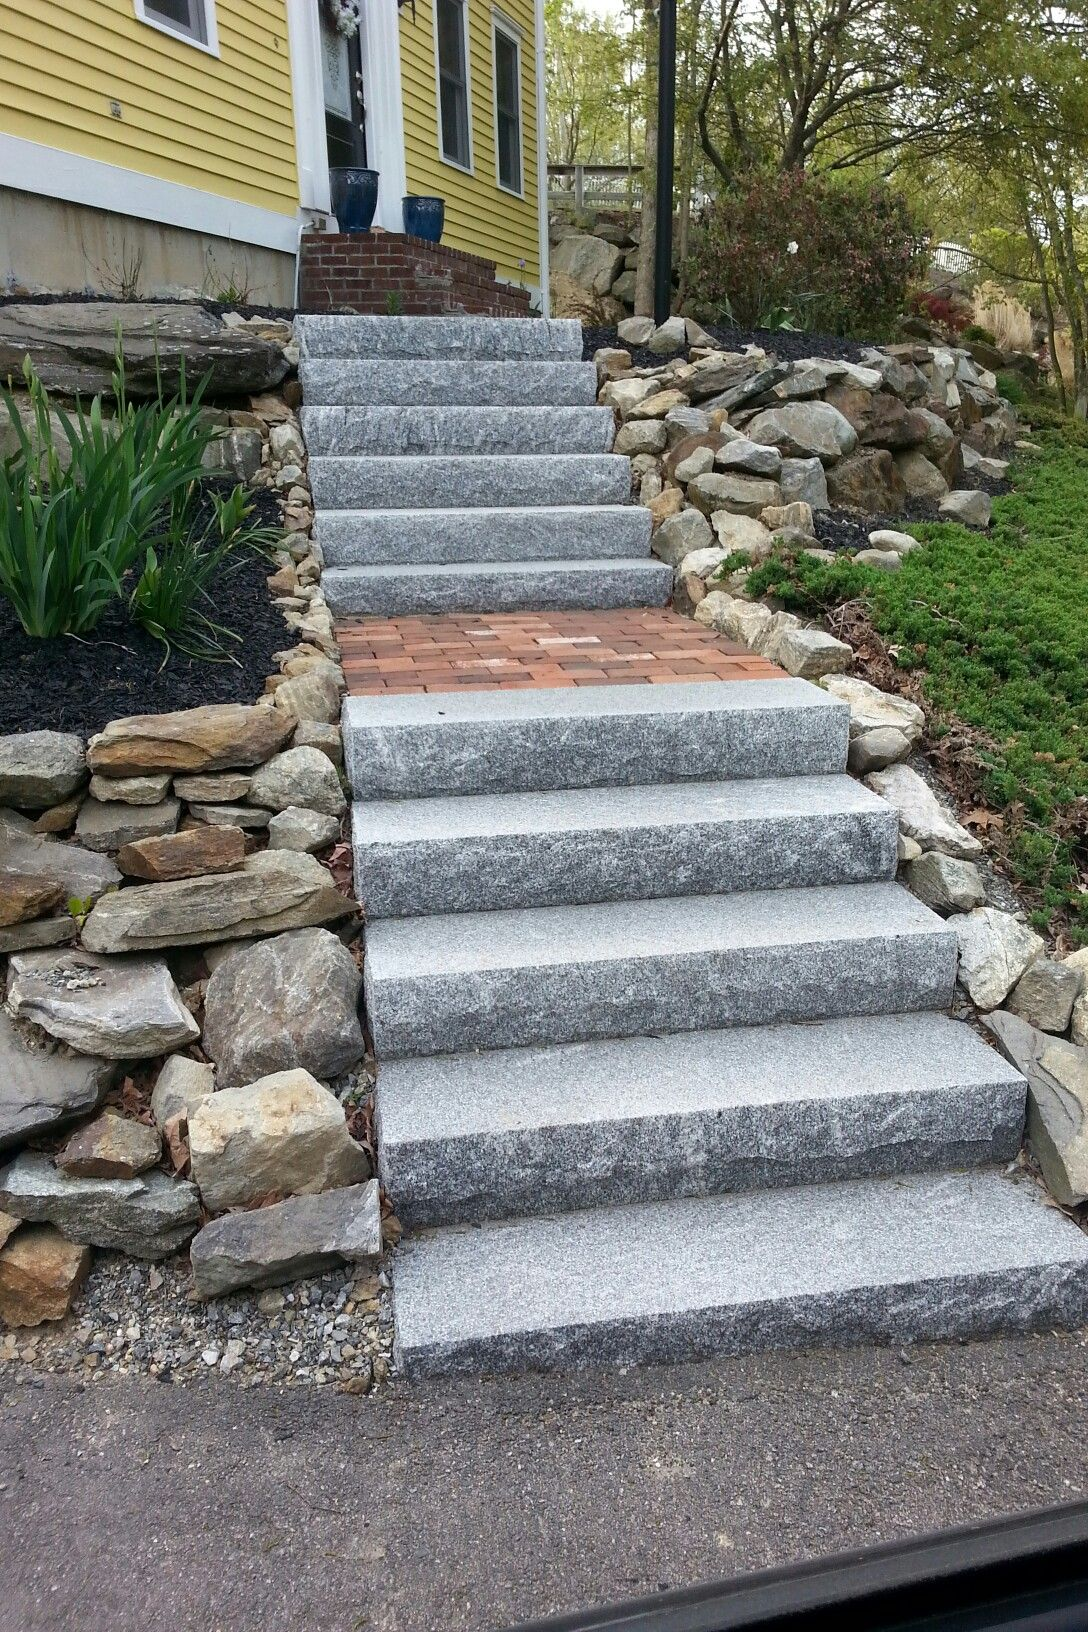 Ordinaire Salt U0026 Pepper Granite Steps W/ Red Brick Inlay Porch Tile, Outdoor Steps,